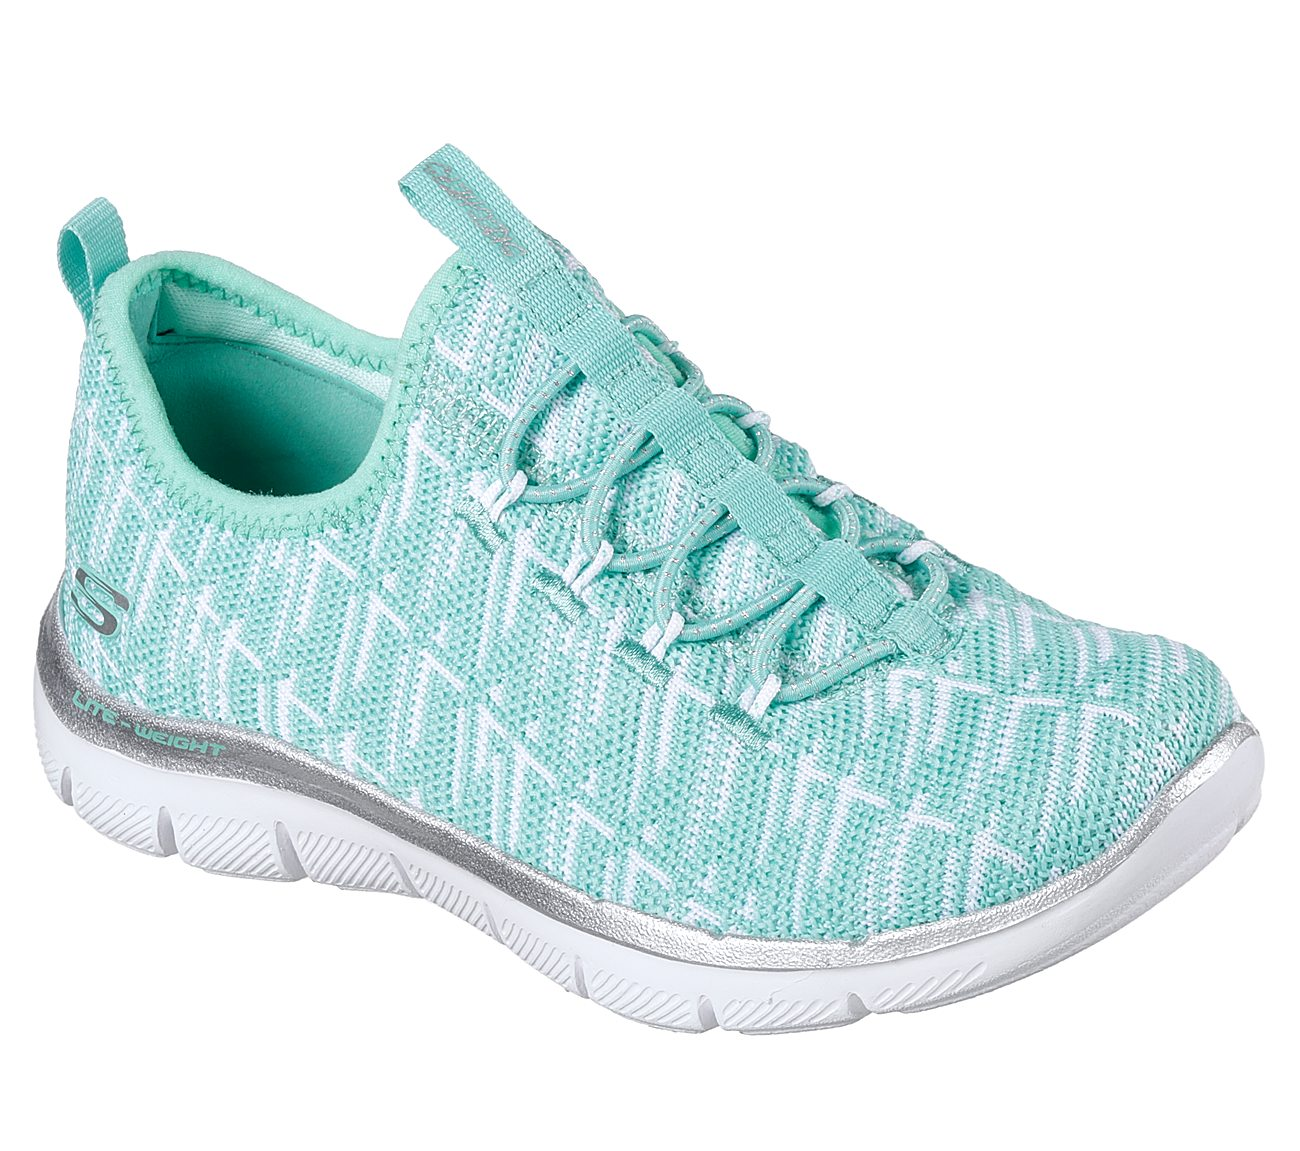 e601c85f3355 Buy SKECHERS Skech Appeal 2.0 - Insights II Walking Shoes Shoes only ...